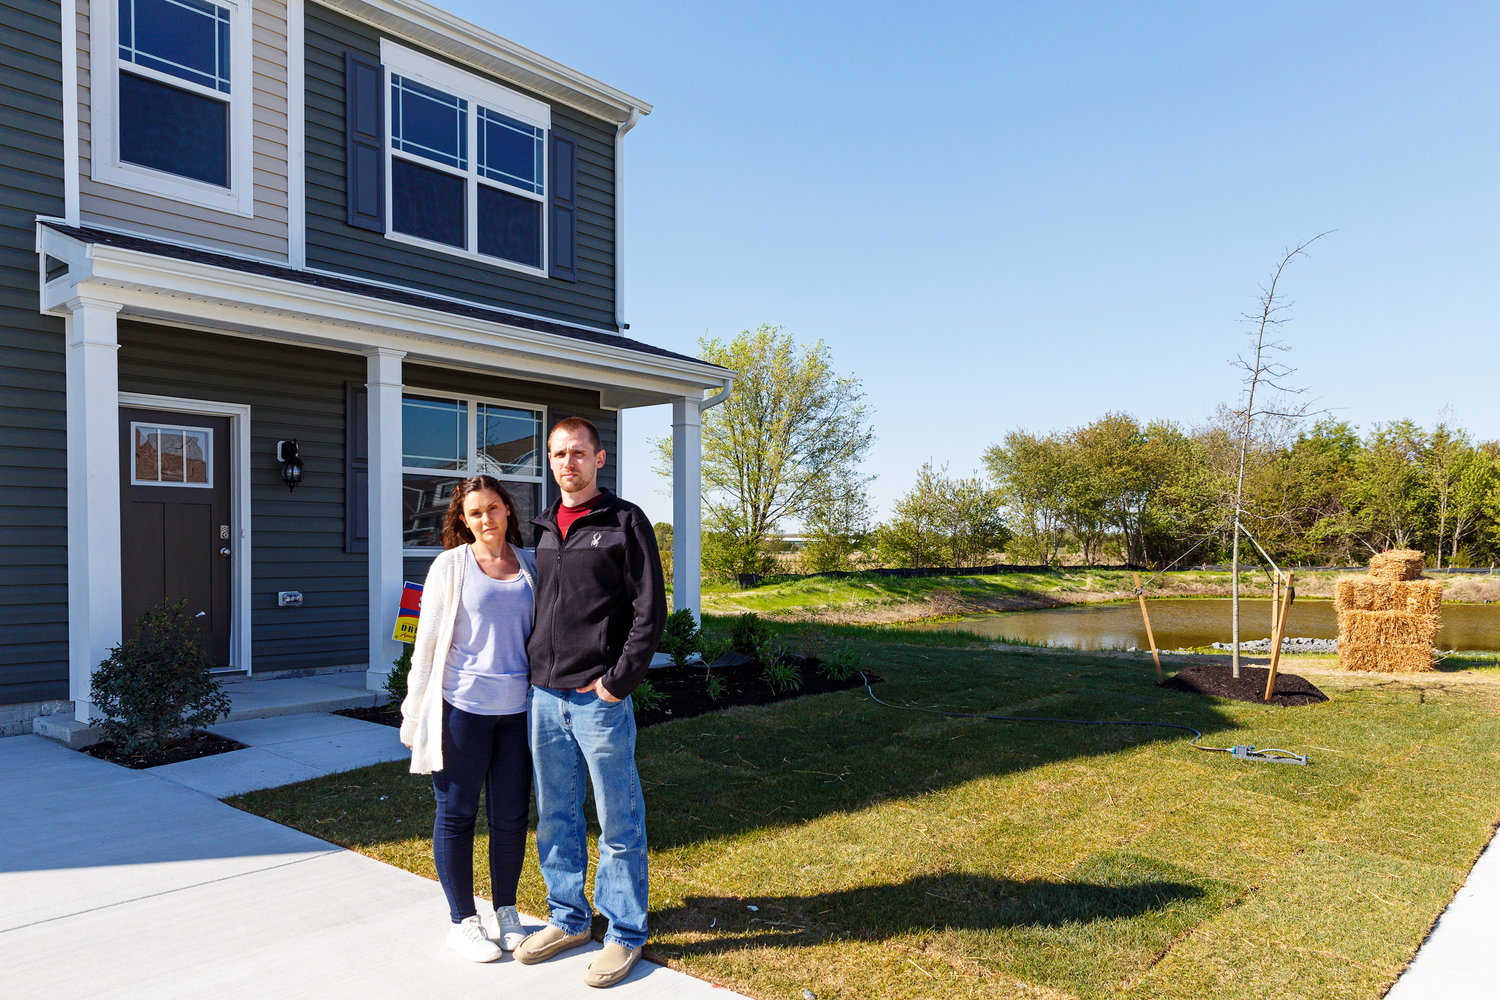 Caitlin and Brian Depelteau in front of their one-time home in Milford's West Shores. Since the developer is not repairing nearby retention ponds in the subdivision, nine families cannot move into their newly constructed homes.